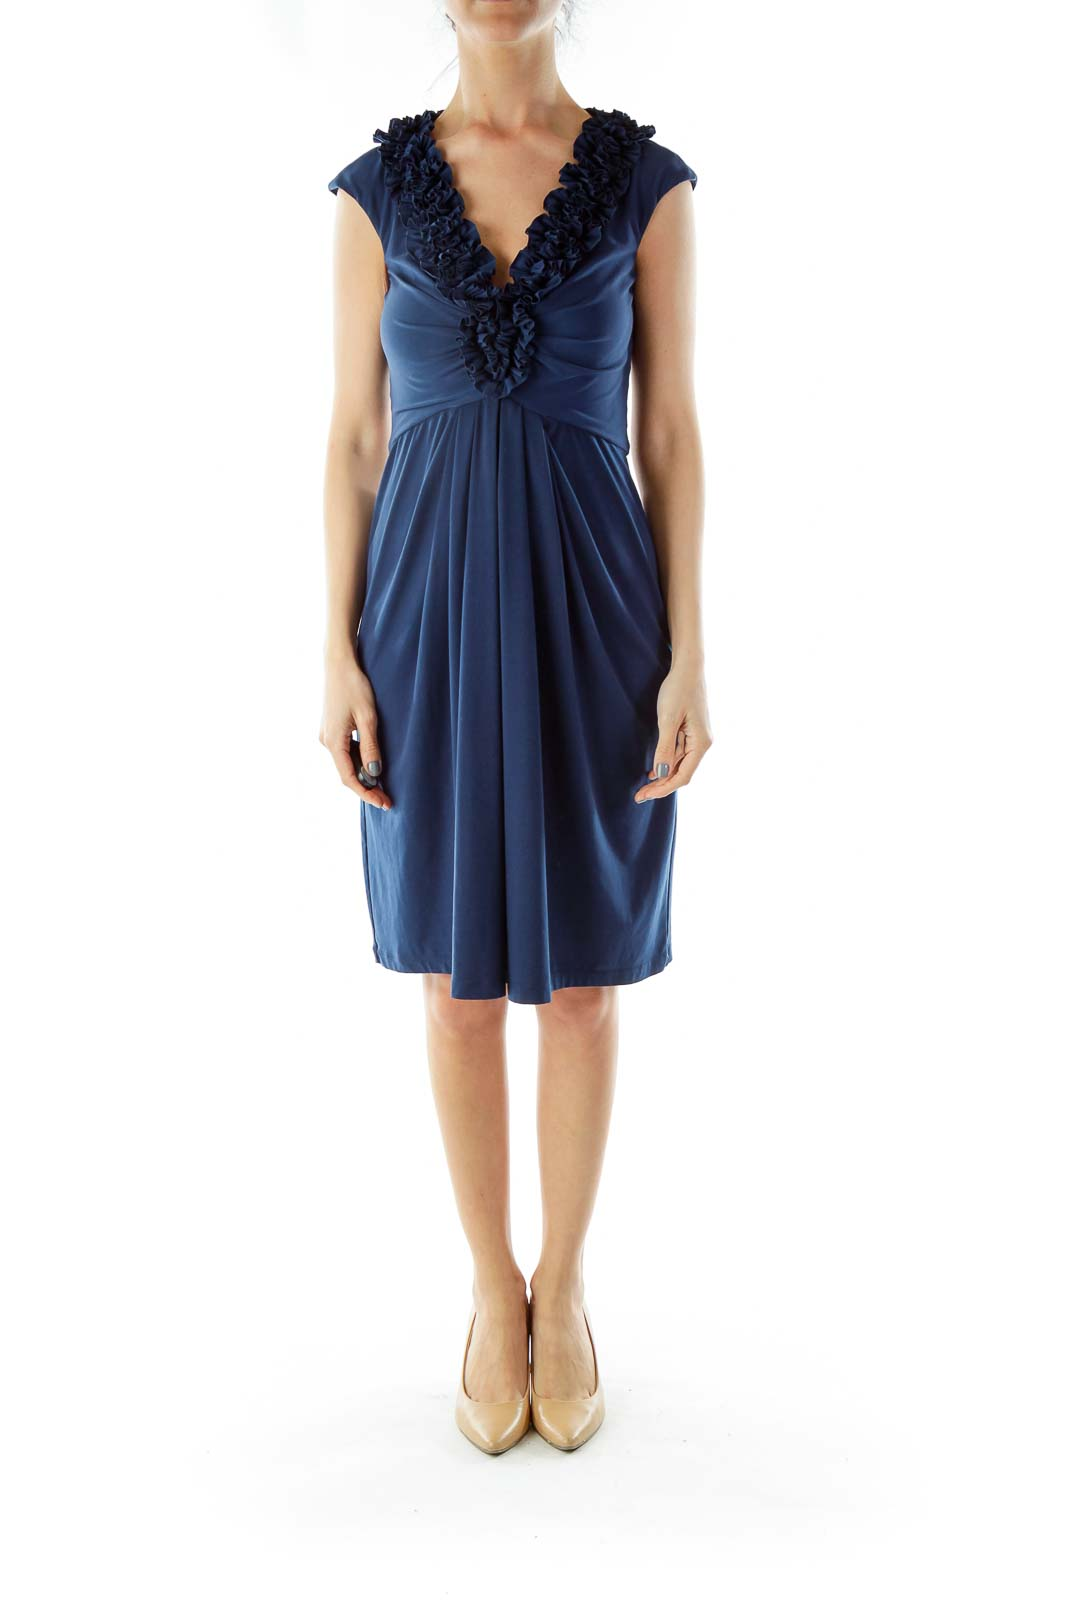 Blue Ruffled A-Line Cocktail Dress